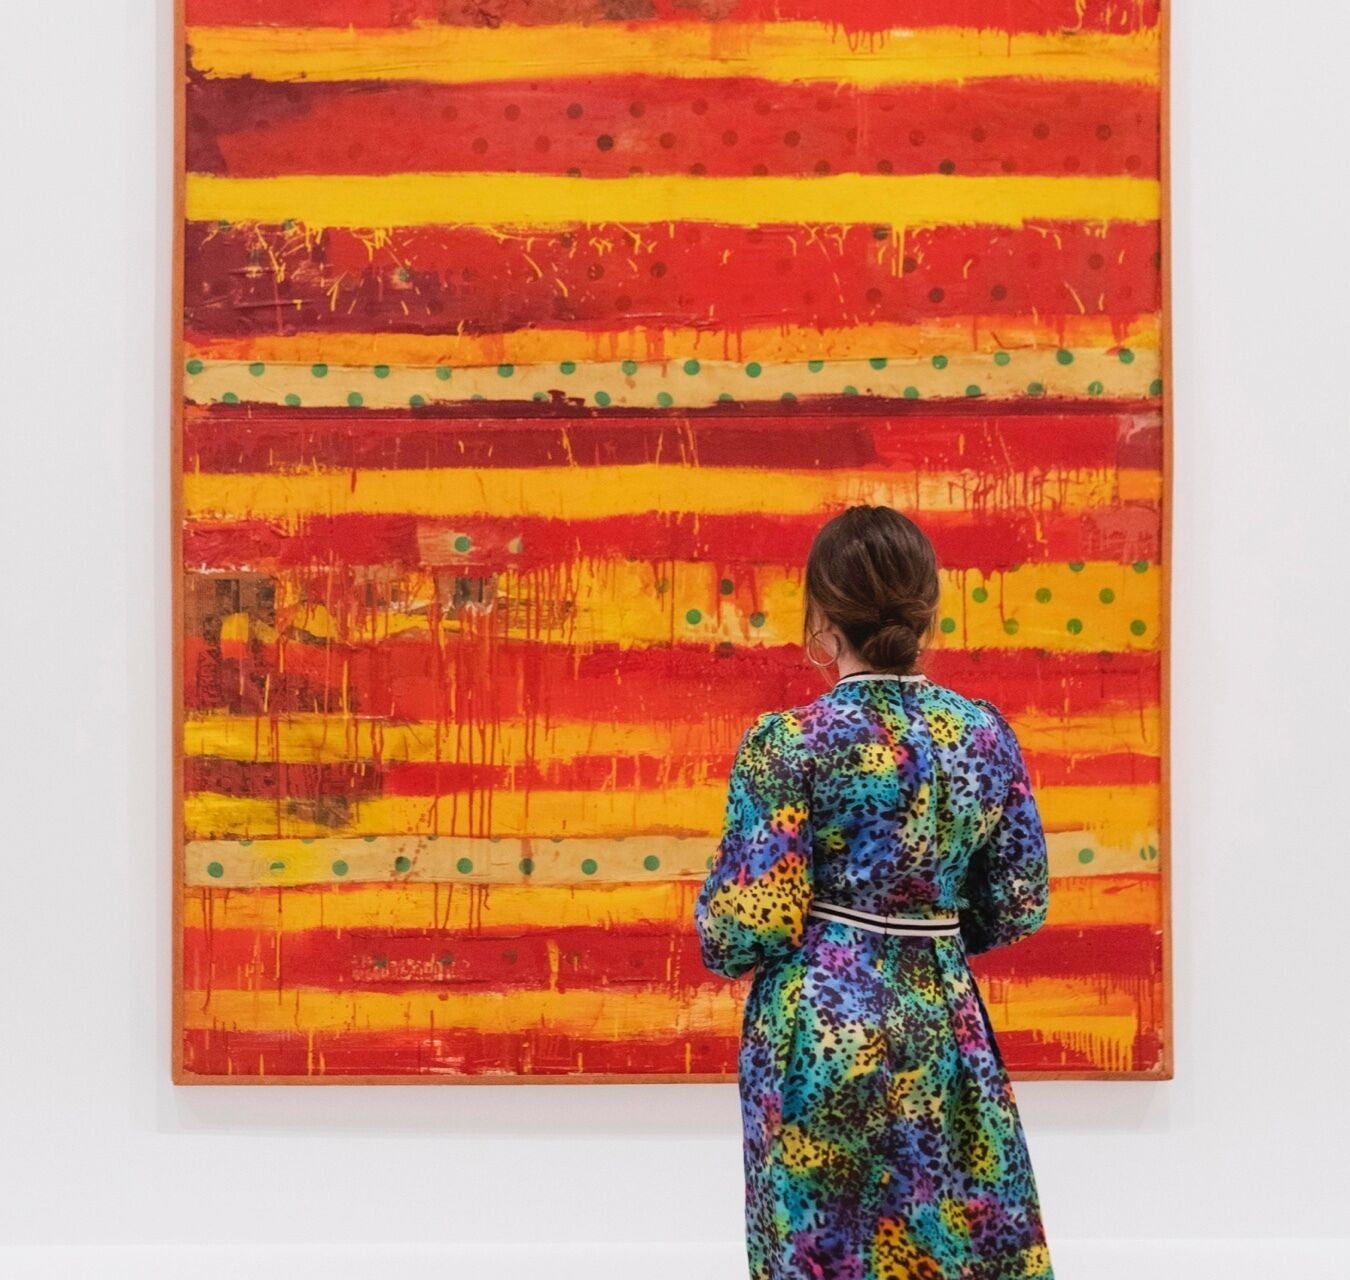 A woman in a printed dress stands in front of a painting.